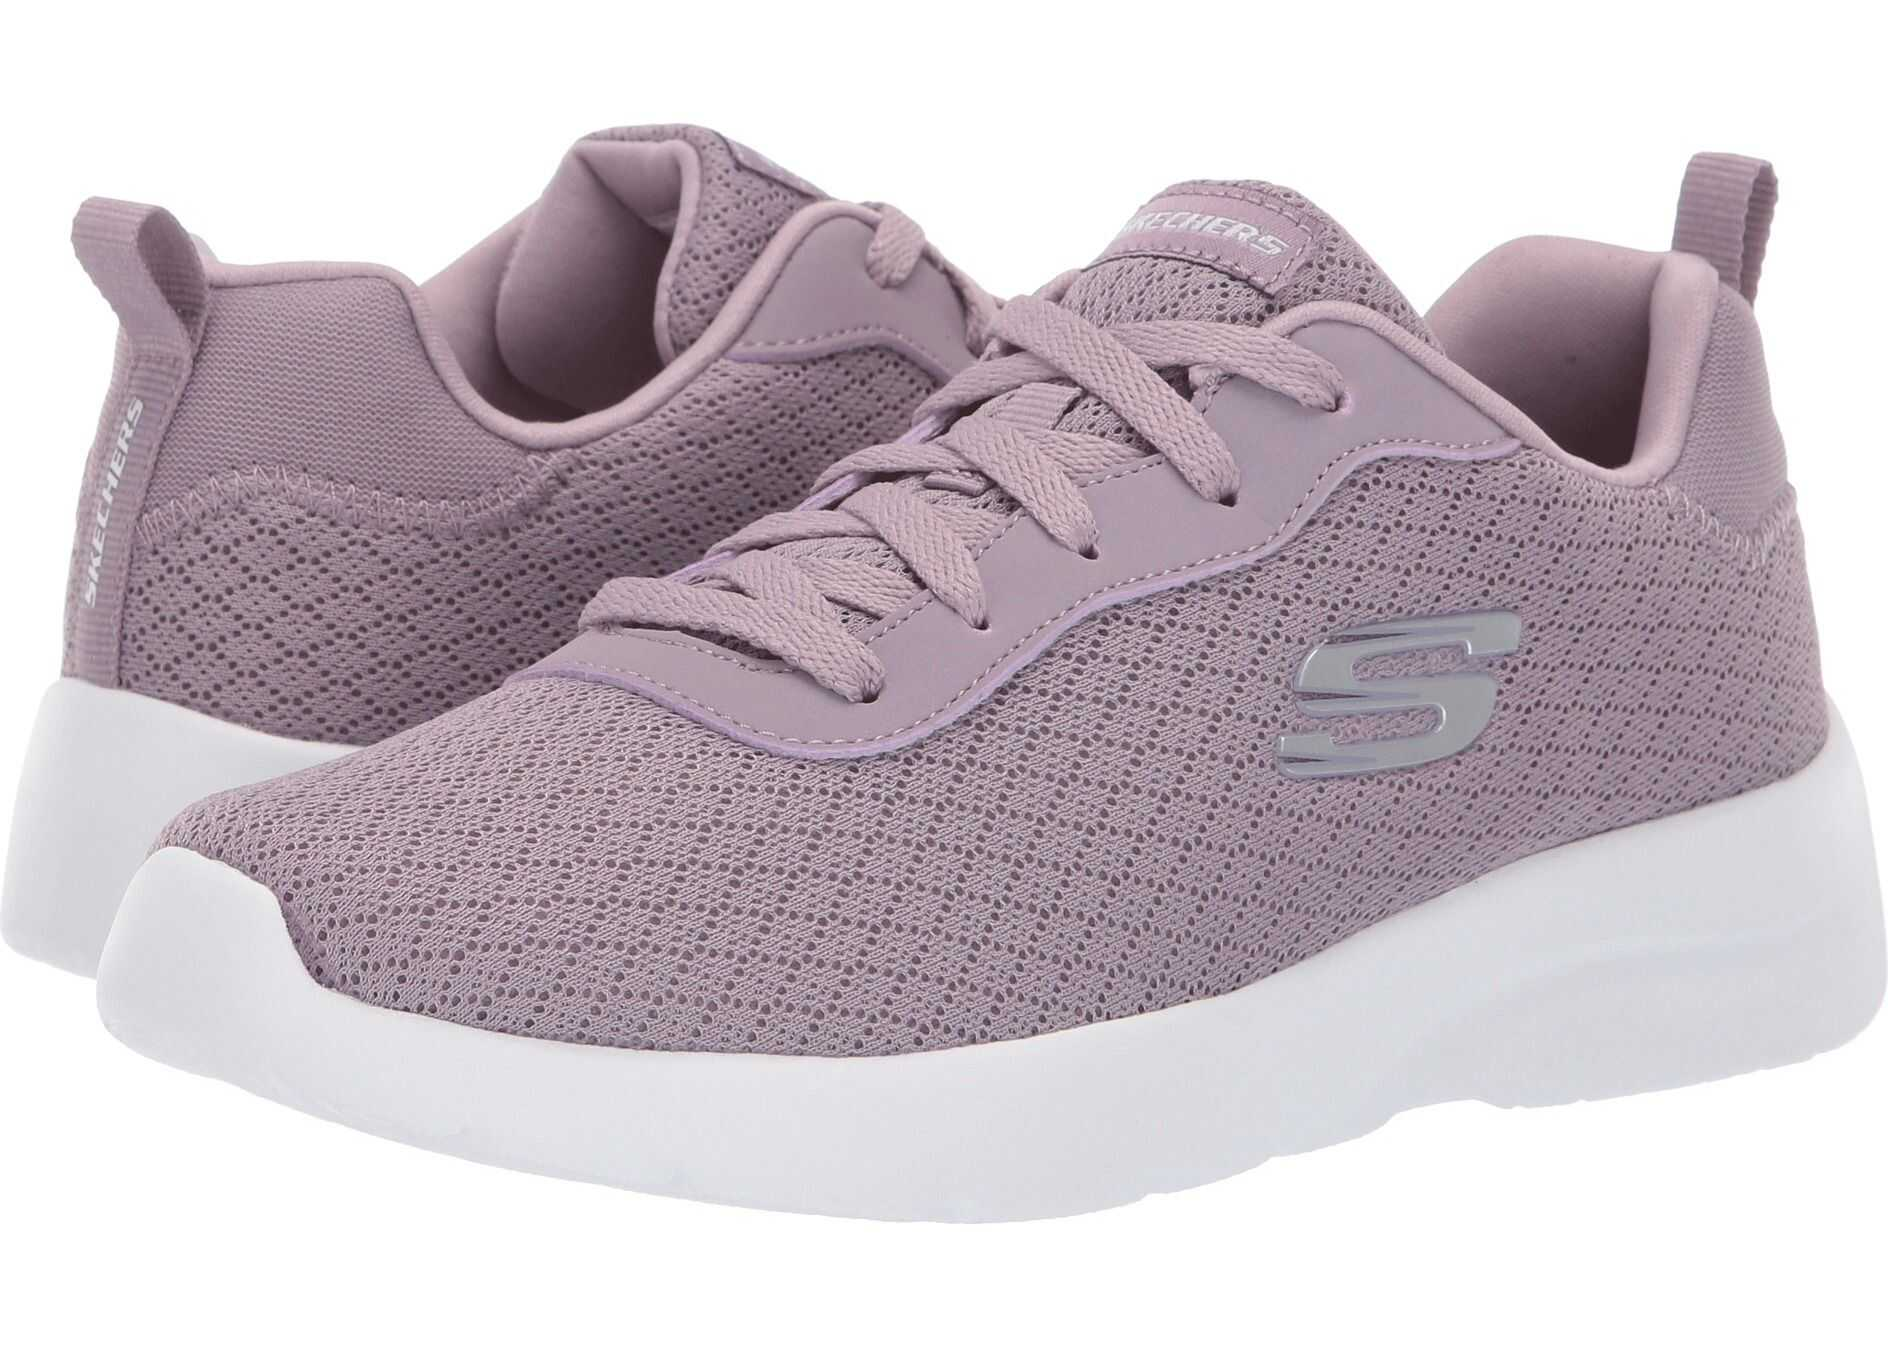 SKECHERS Dynamight 2.0 - Eye to Eye Lavender